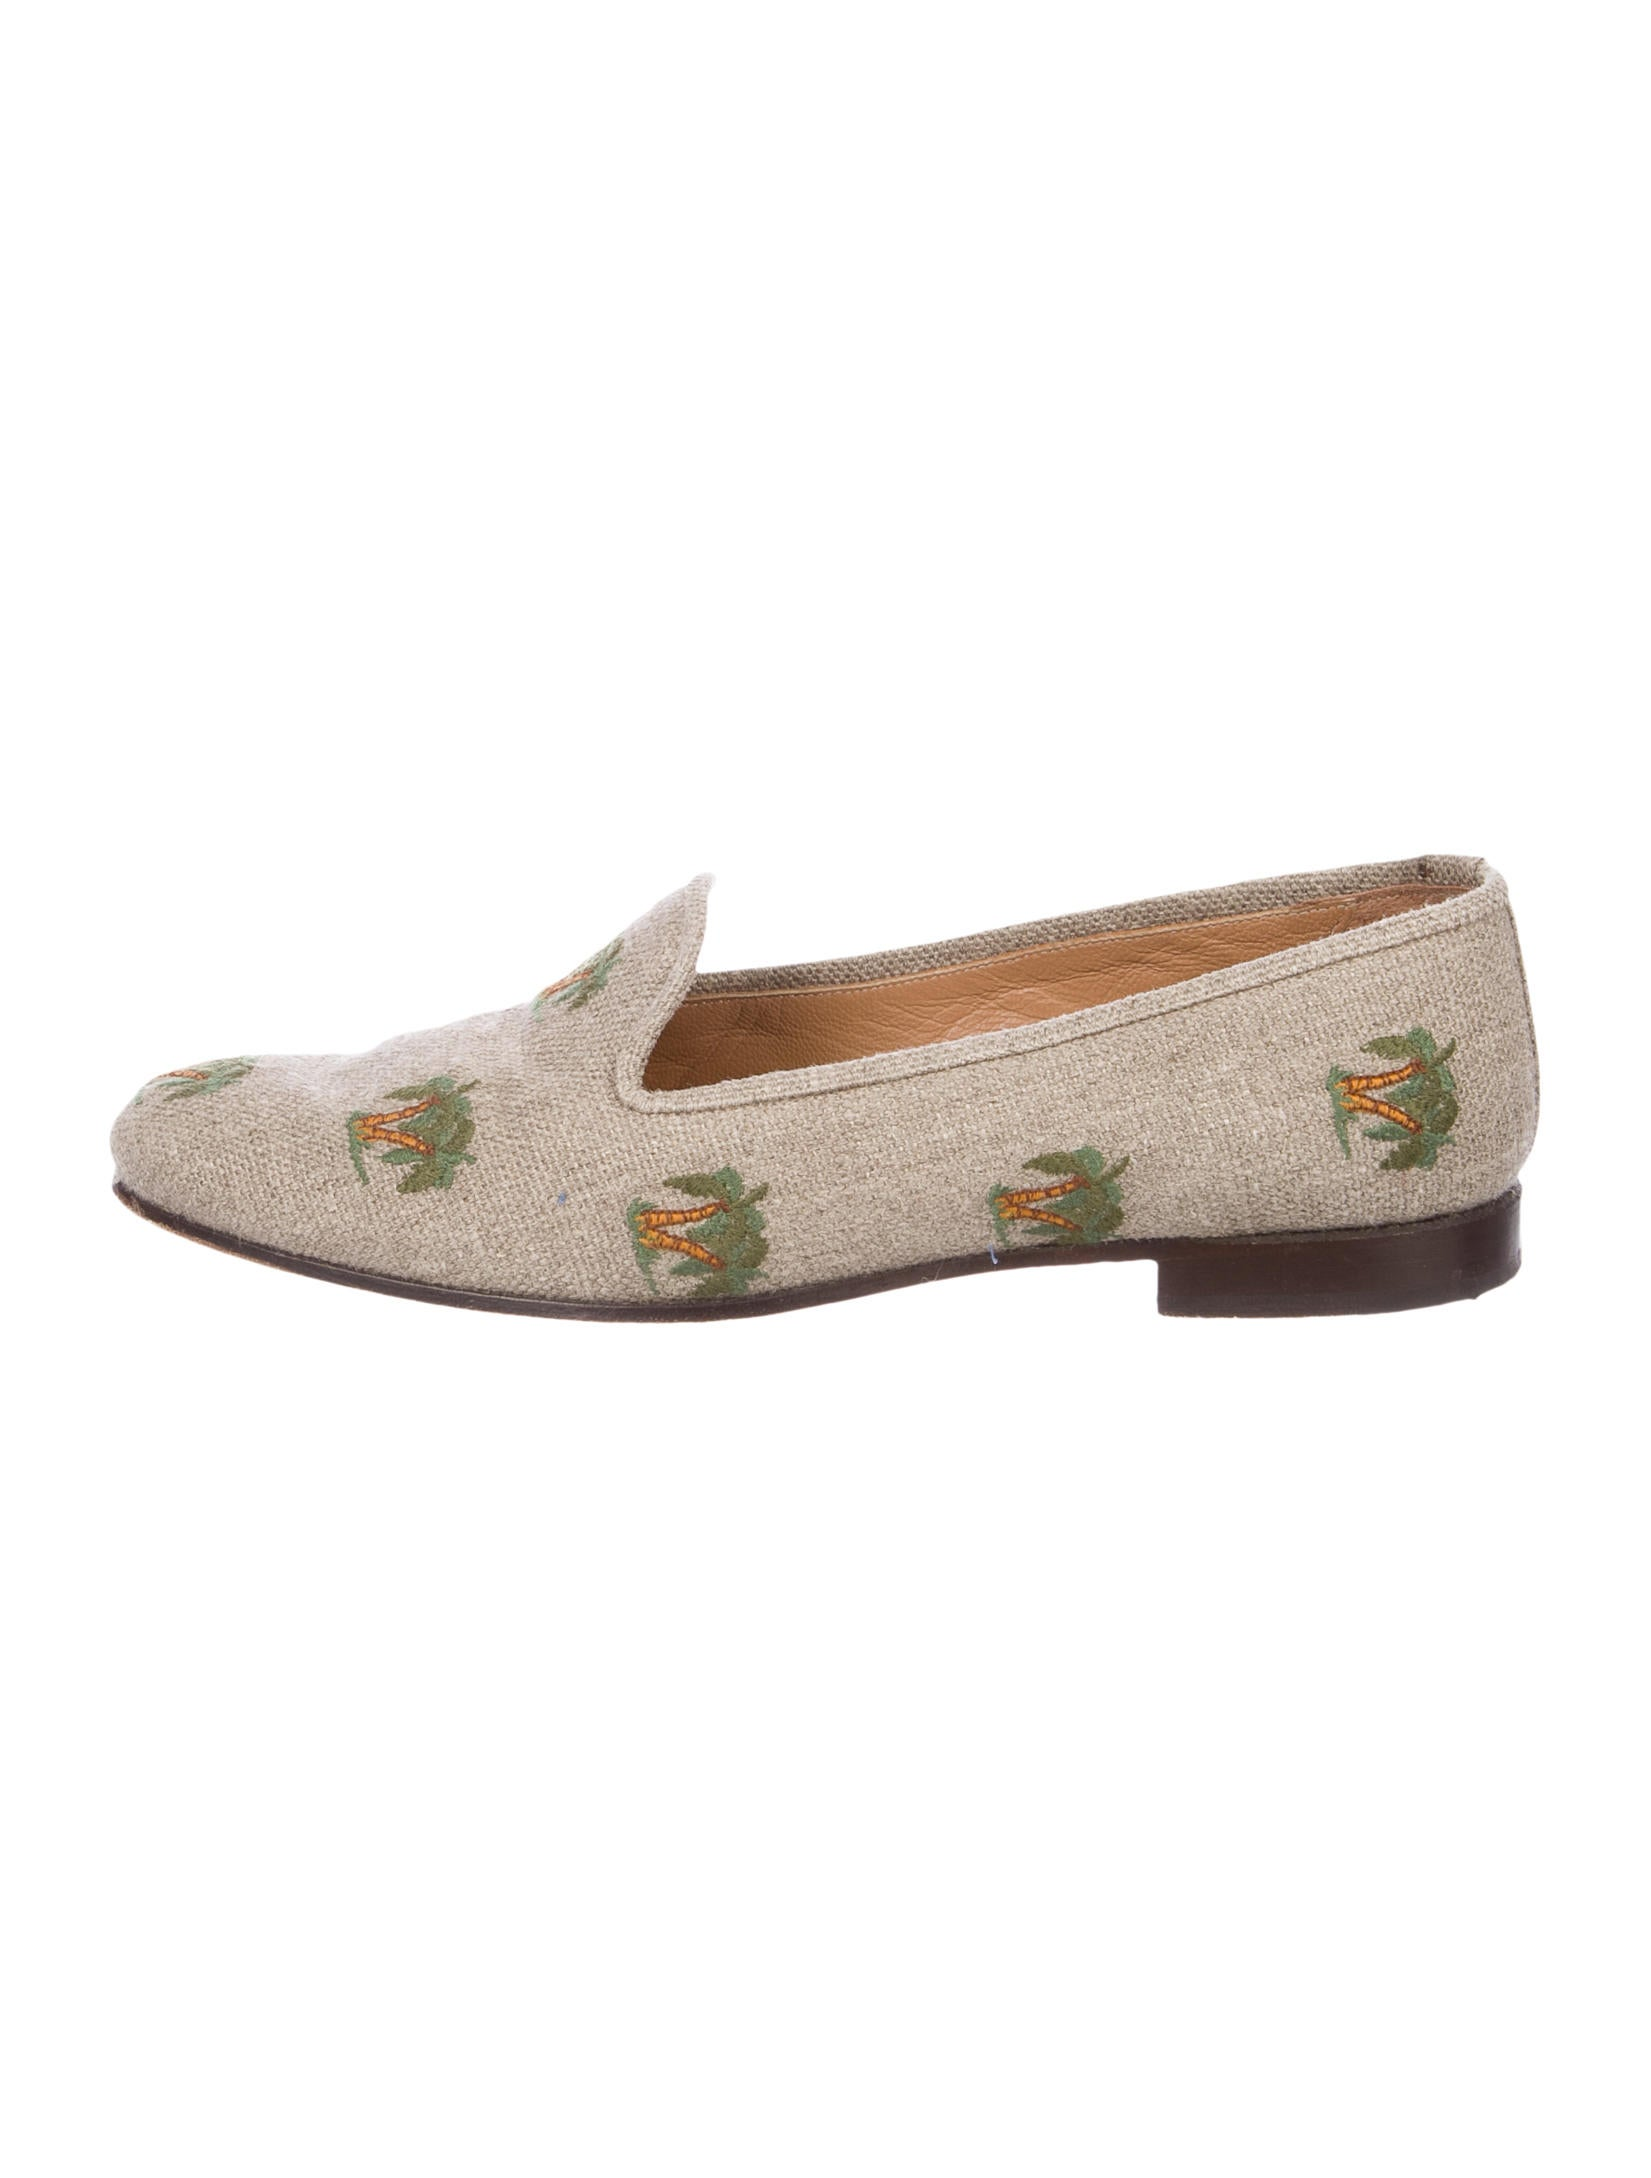 clearance outlet store Stubbs & Wootton Canvas Round-Toe Flats free shipping choice outlet cheap prices really sale online MMrlsJaB